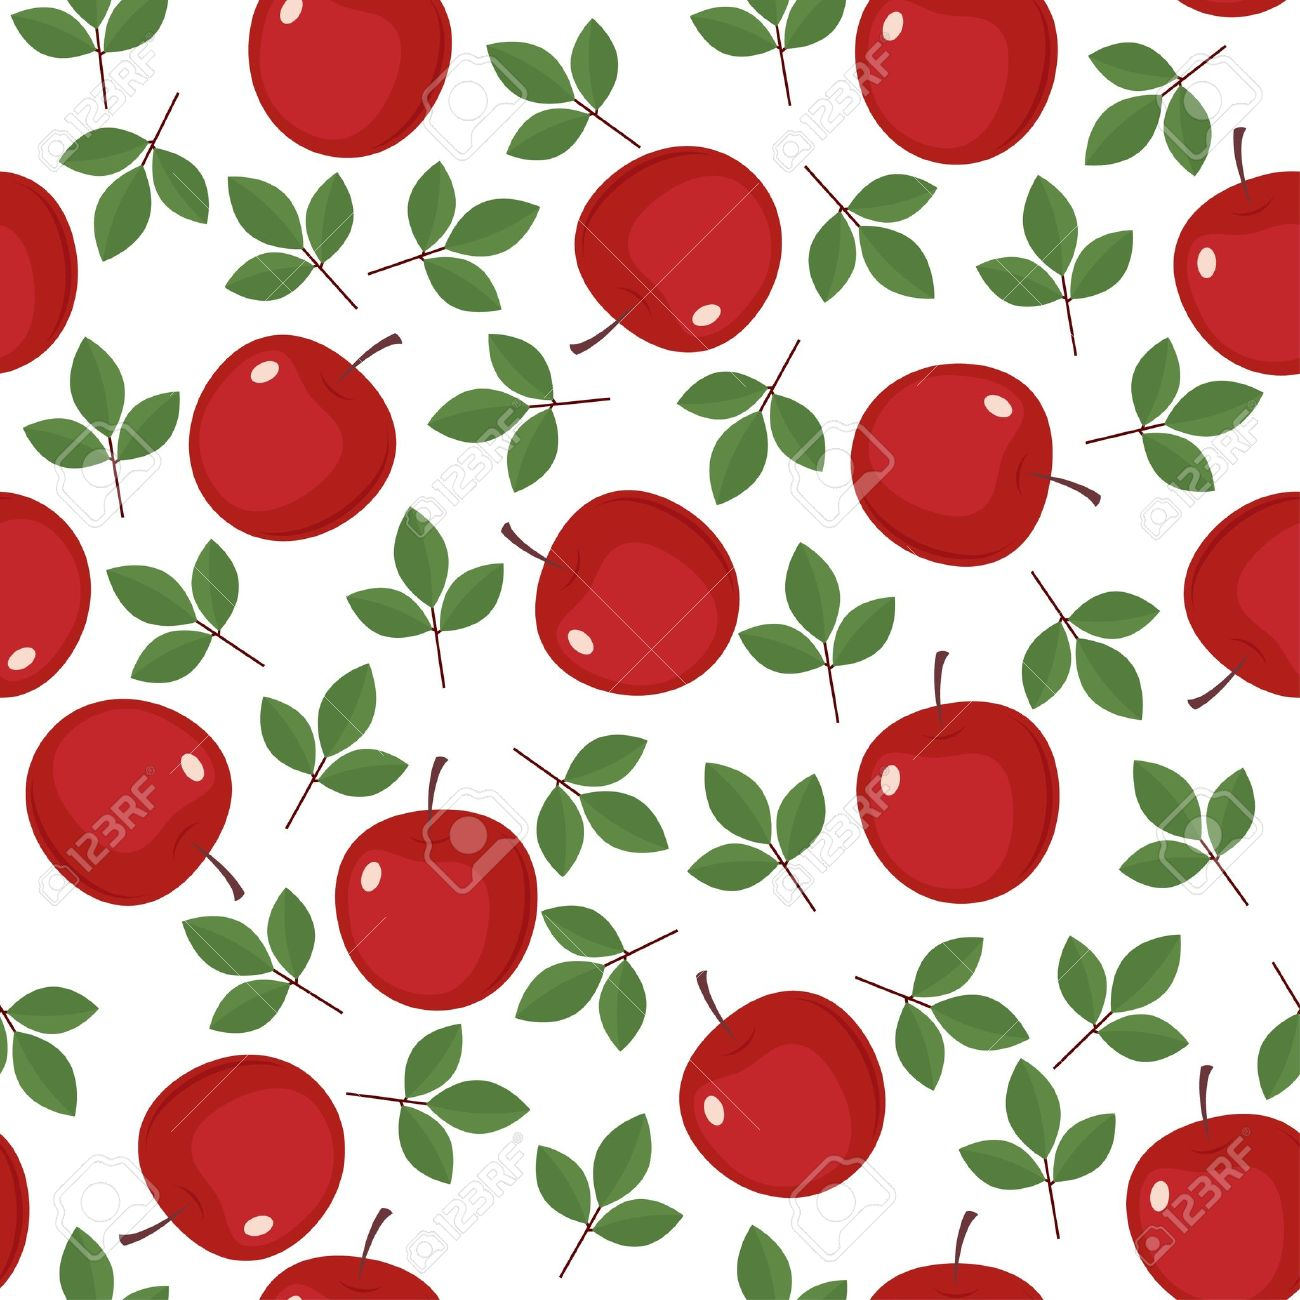 seamless wallpaper with red apples and green leaves royalty free